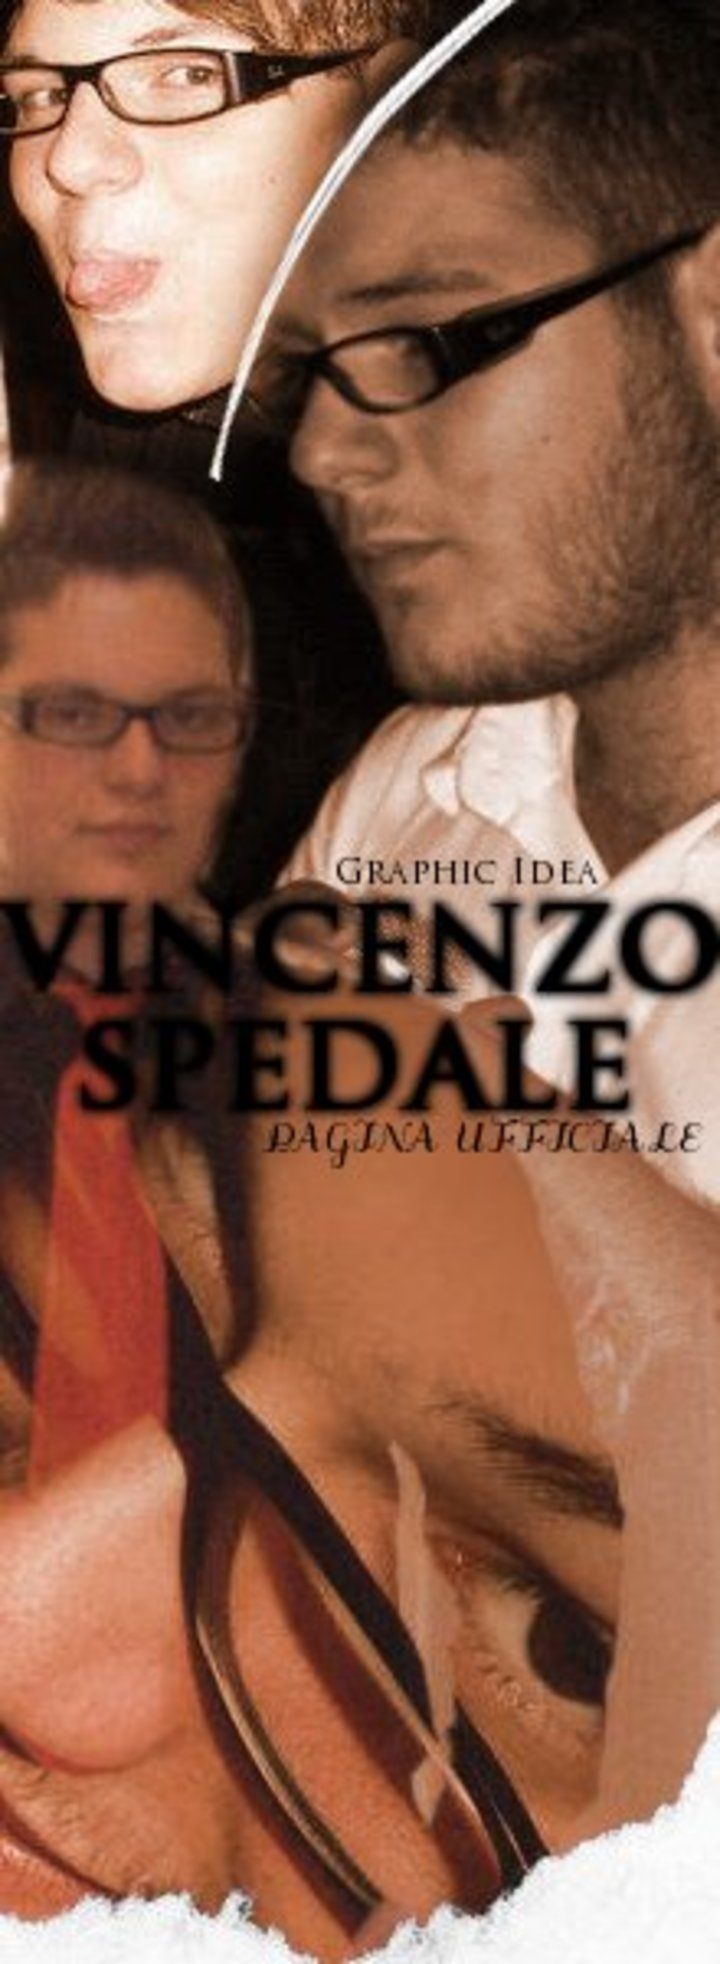 Vincenzo Spedale Tour Dates